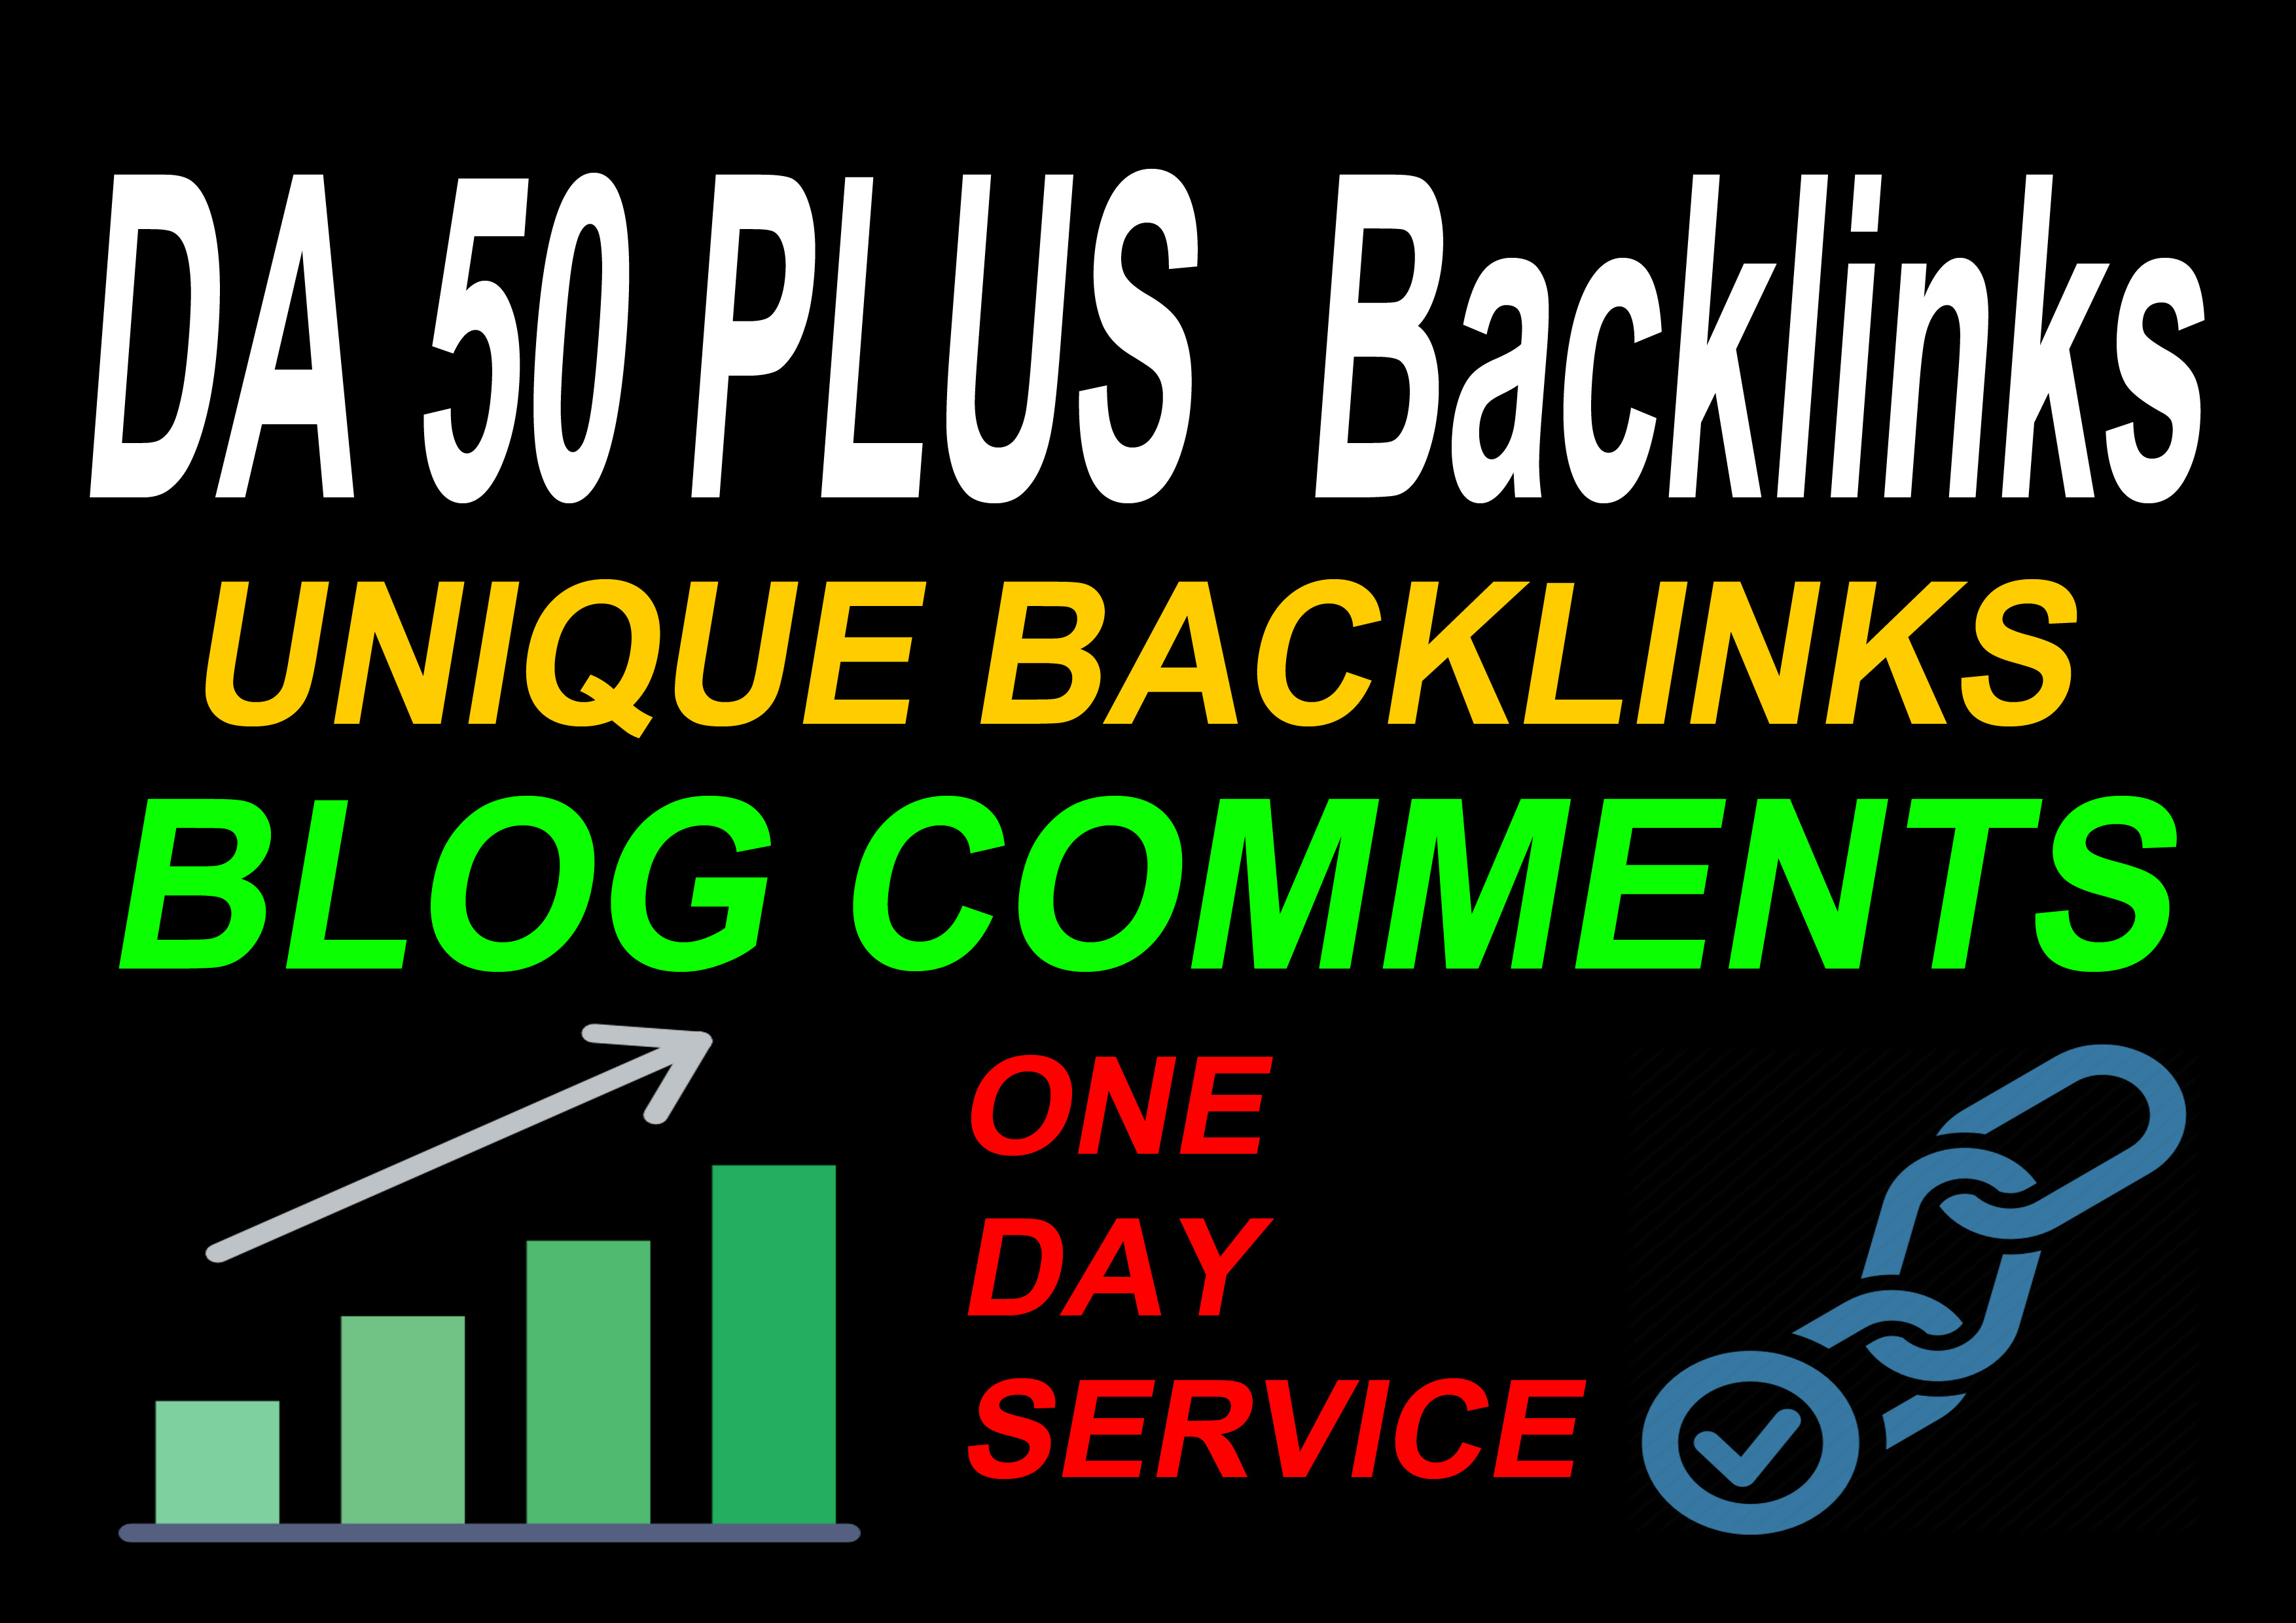 I Will Do 50 Plus DA With 42 Unique Backlinks